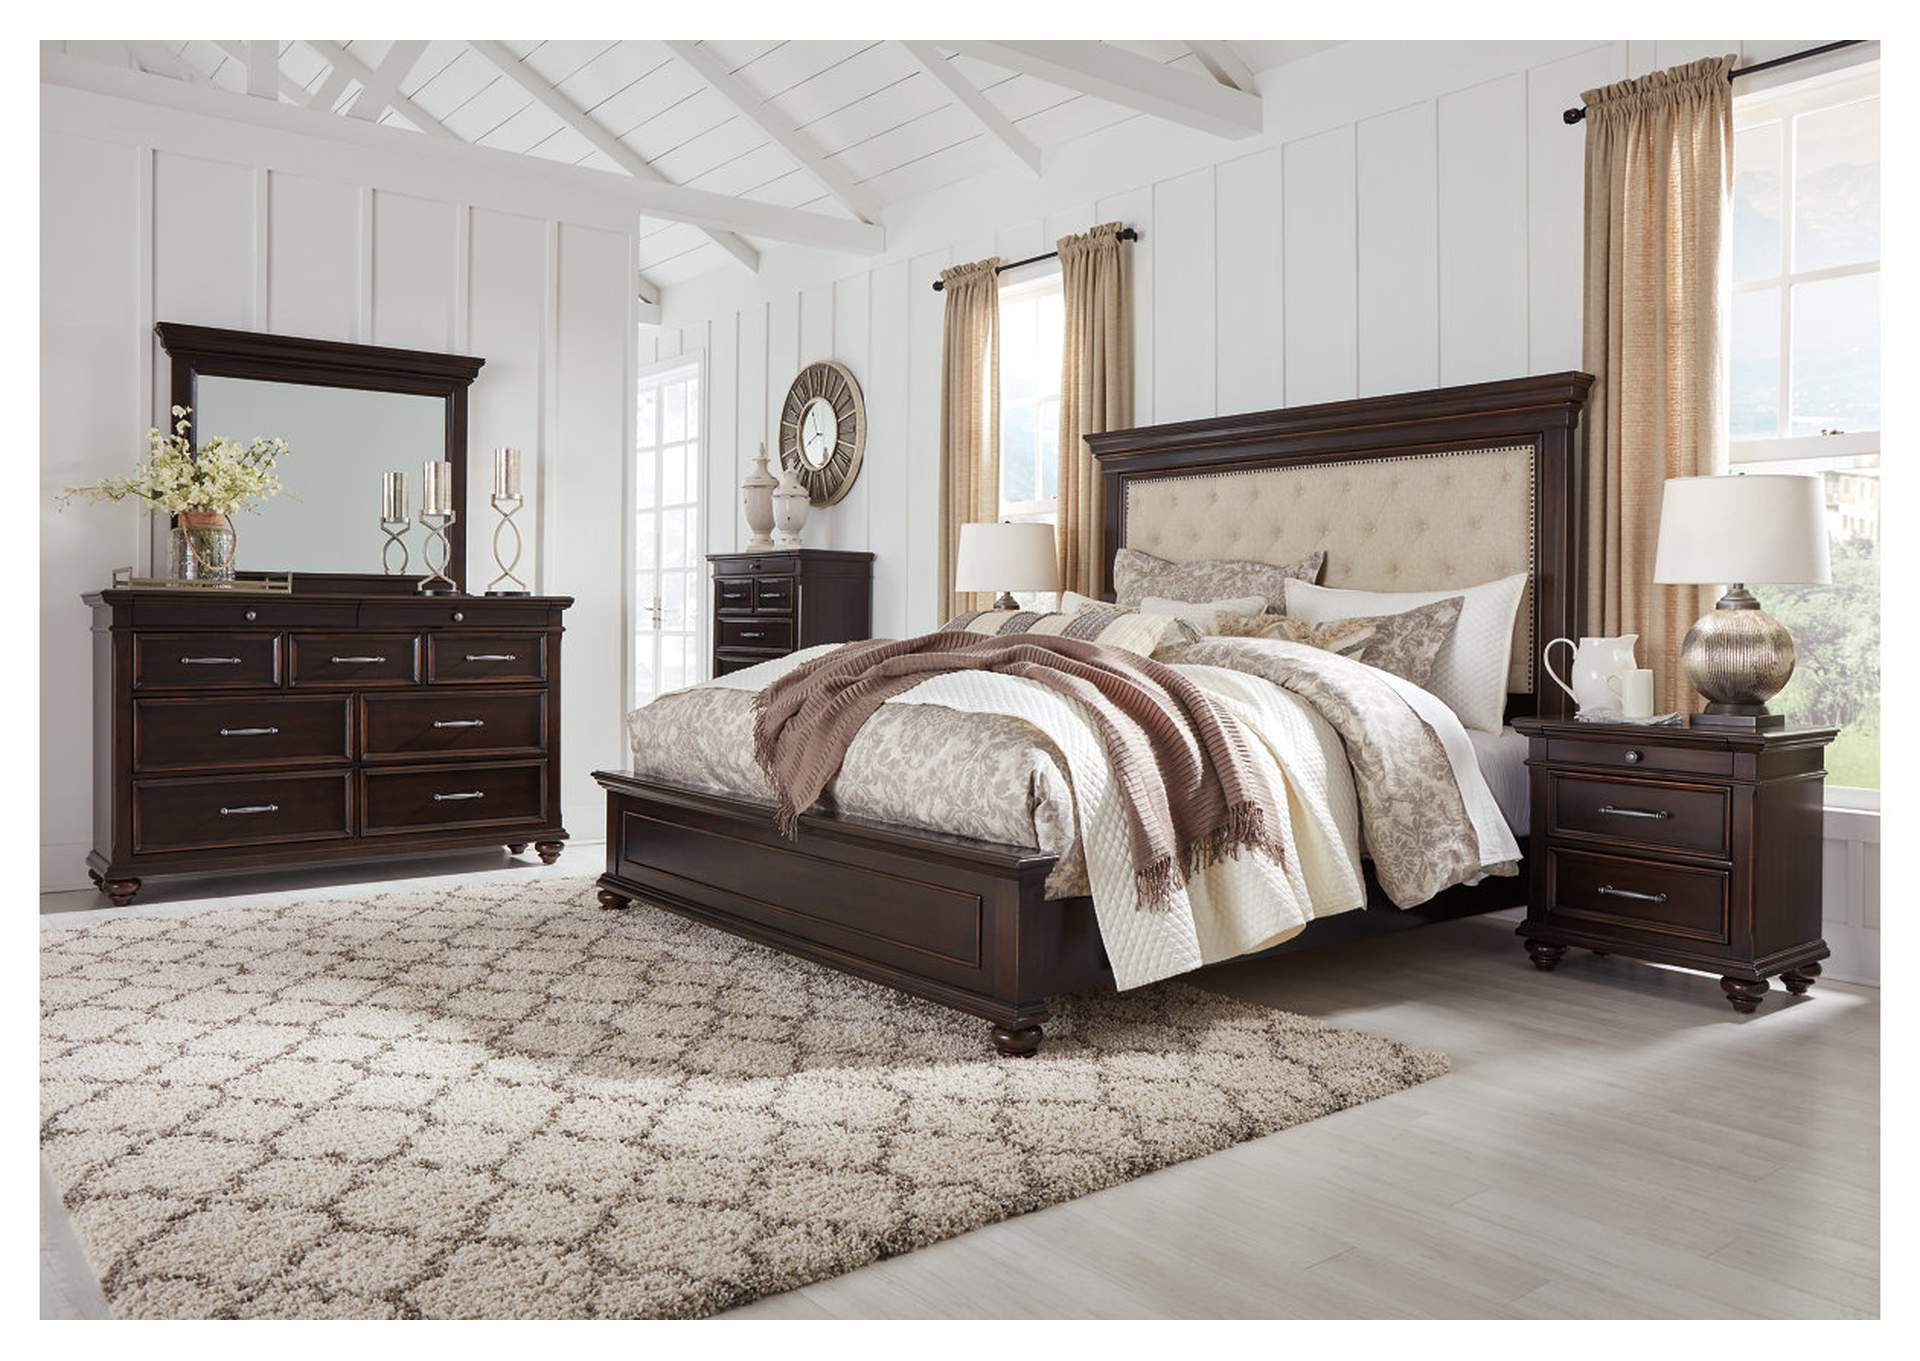 Brynhurst Brown California King Upholstered Panel Bed Dresser w/Mirror,Signature Design By Ashley